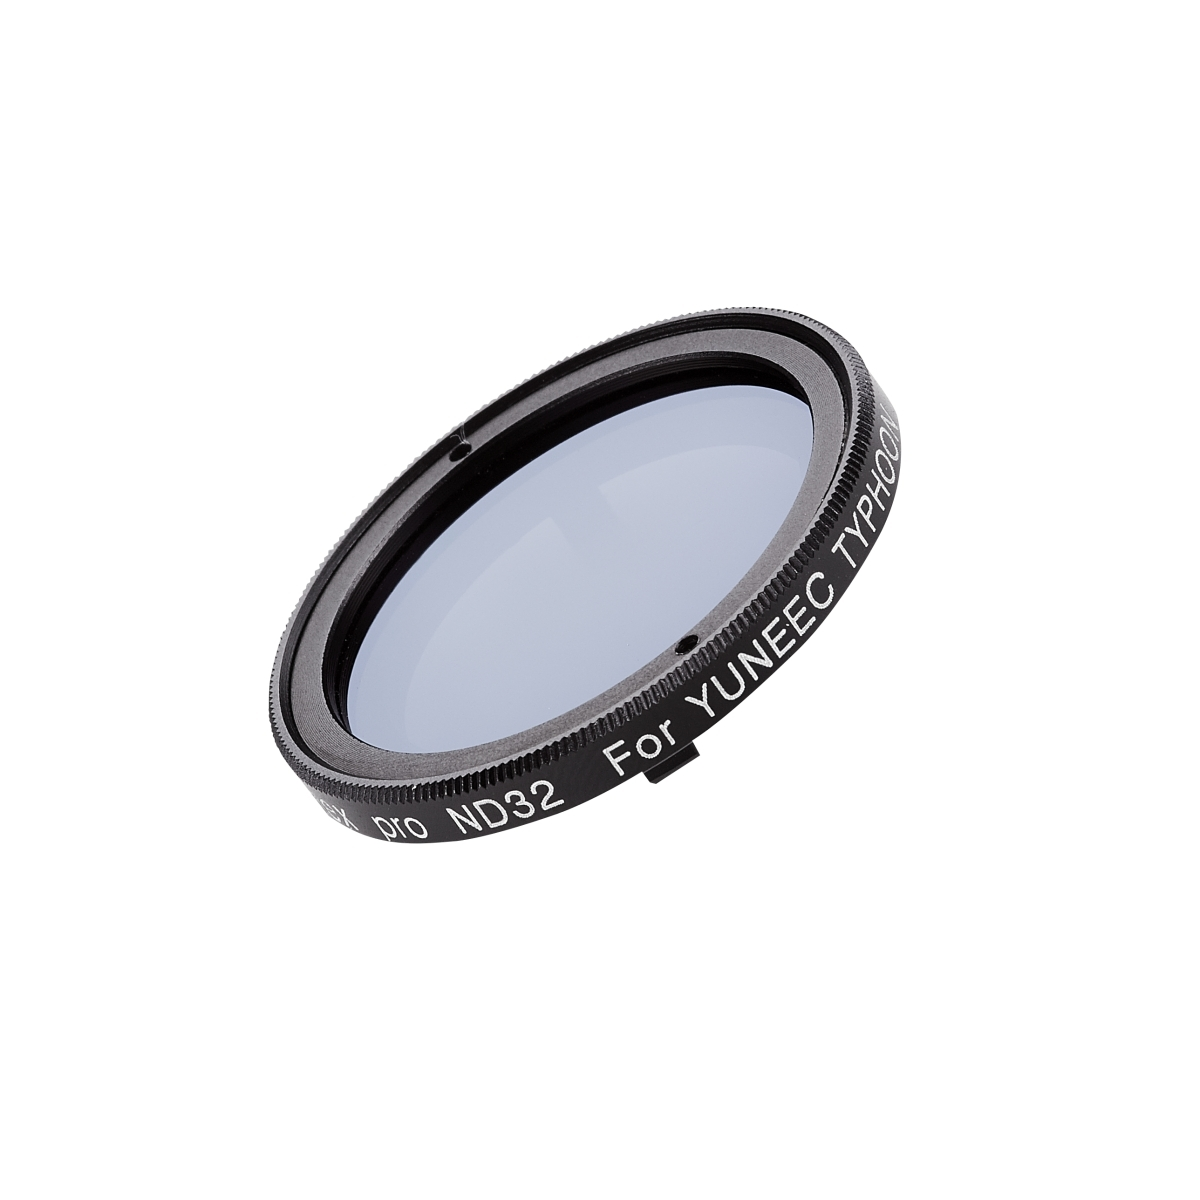 Walimex pro ND 32 drone filter Yuneec Typhoon